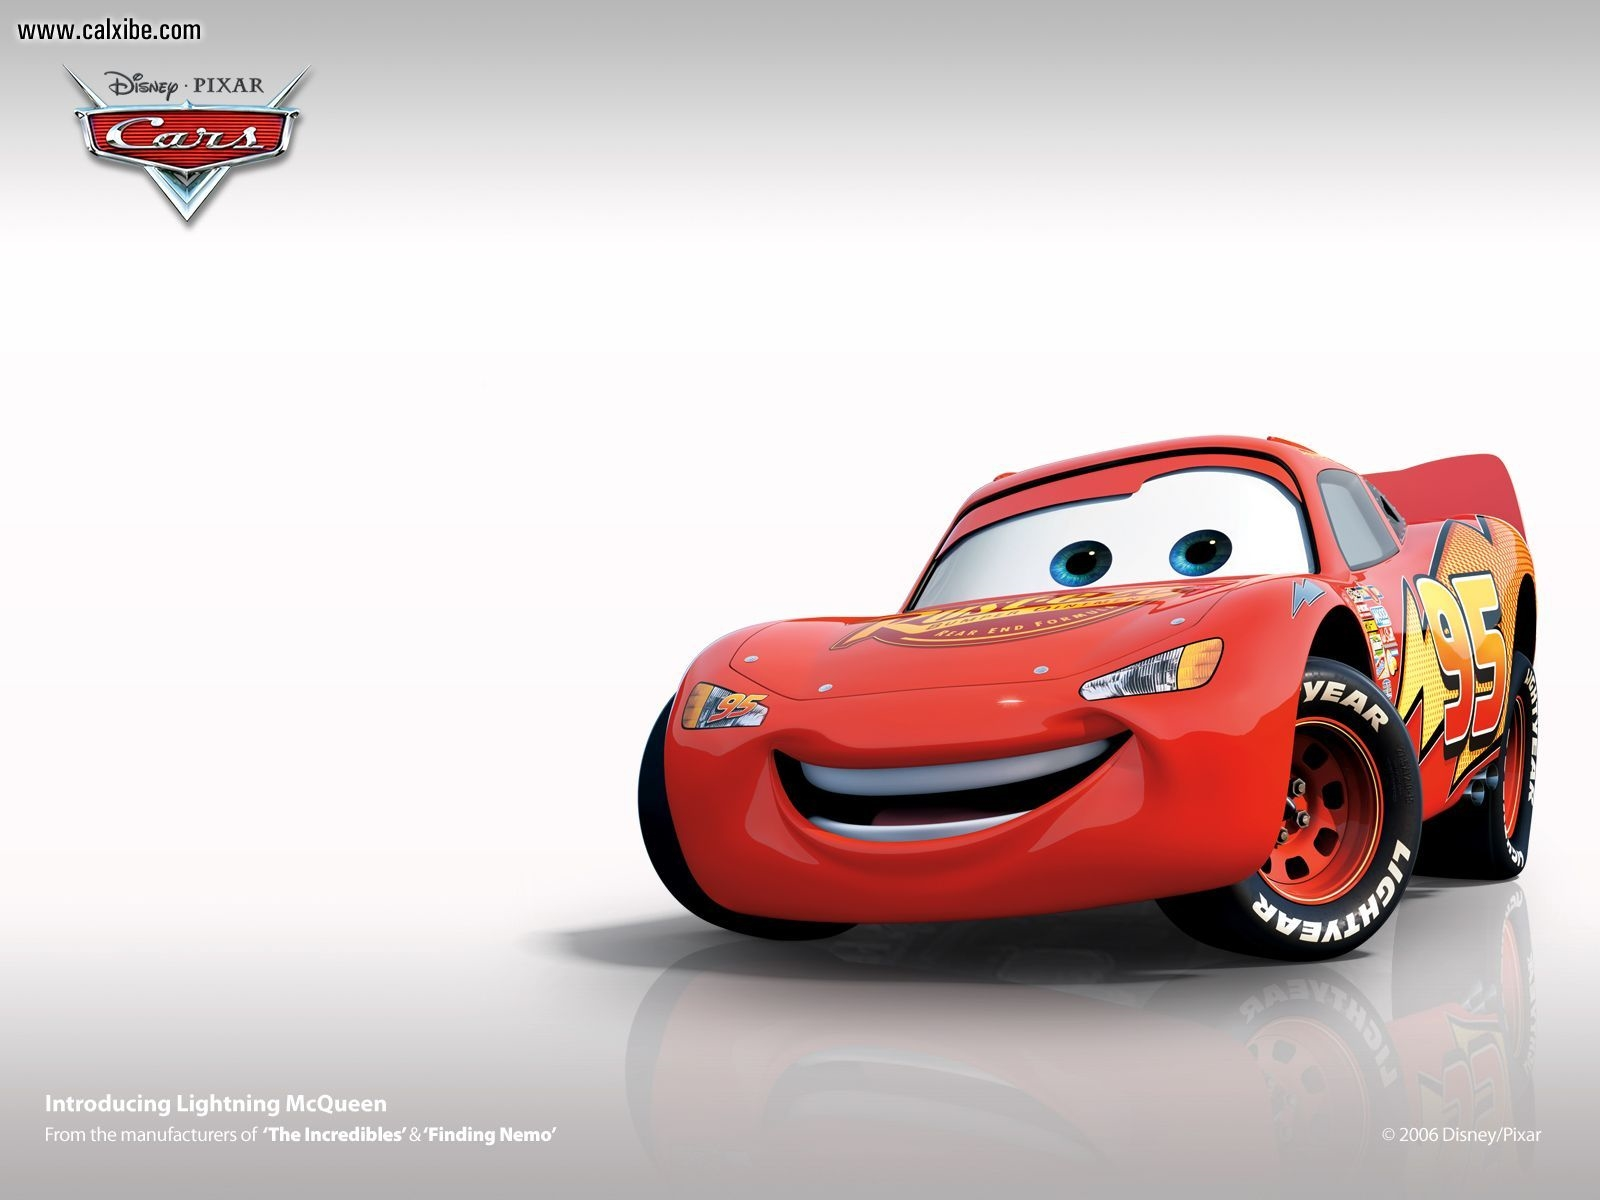 Disney cars wallpapers page 2 - Image cars disney ...